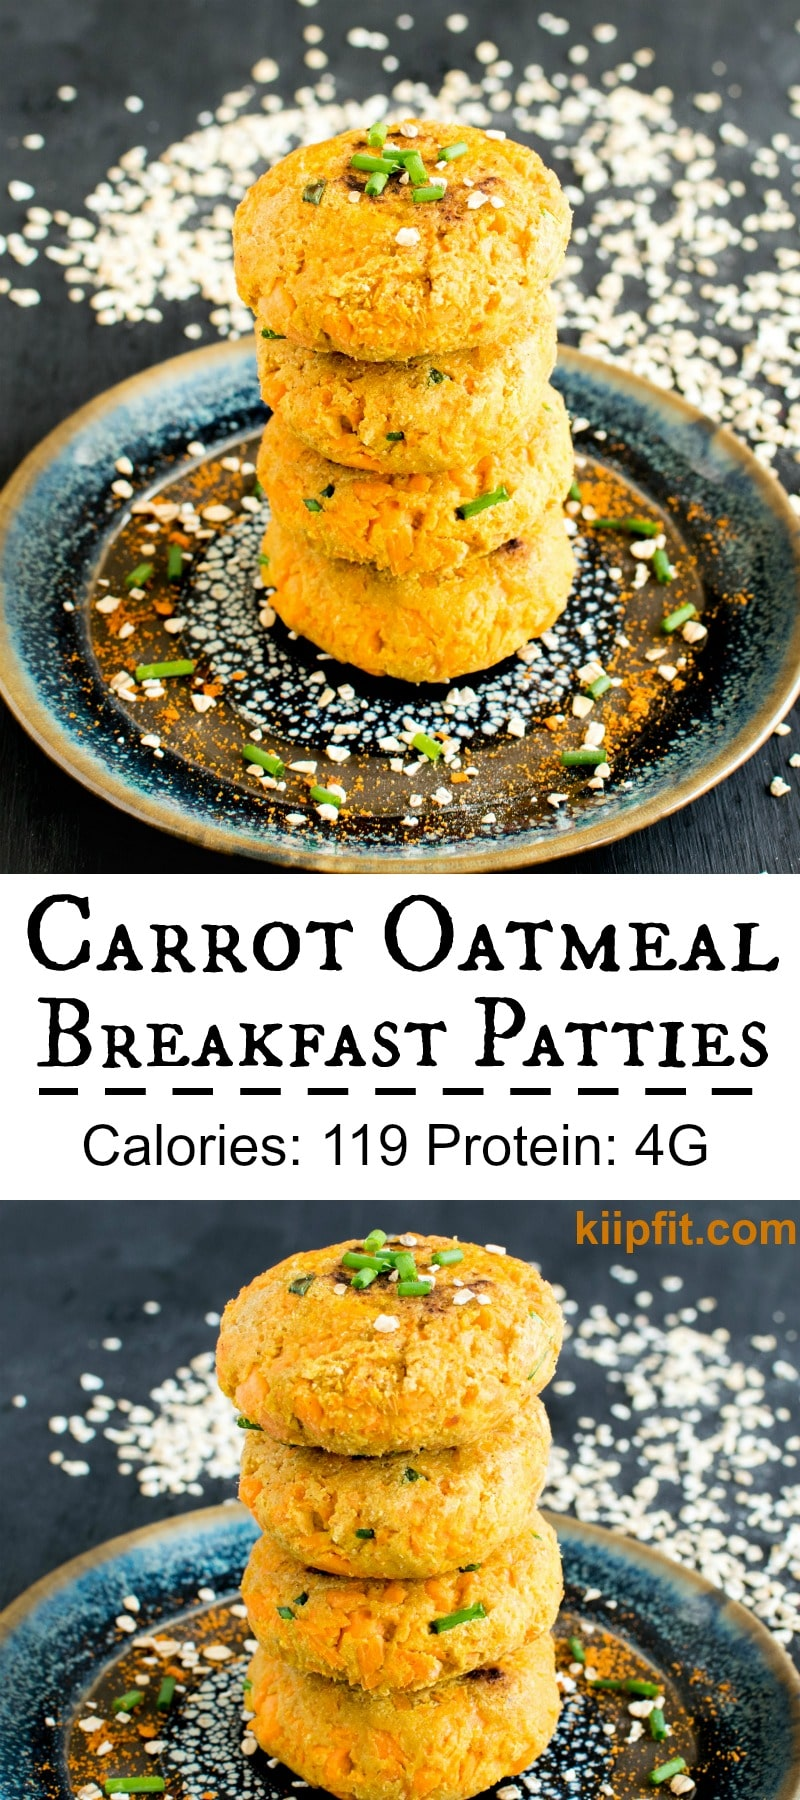 Carrot Oatmeal Breakfast Patties are scrumptious wholesome morning meal with utmost nutrition. At the same time these patties serve as excellent evening snacks as well. These patties are a complete delight to the taste buds and filling for our tummies. With the combination of fiber and whole grain Carrot Oatmeal Breakfast Patties are absolutely desirable [ vegan + savory + oil free ] kiipfit.com